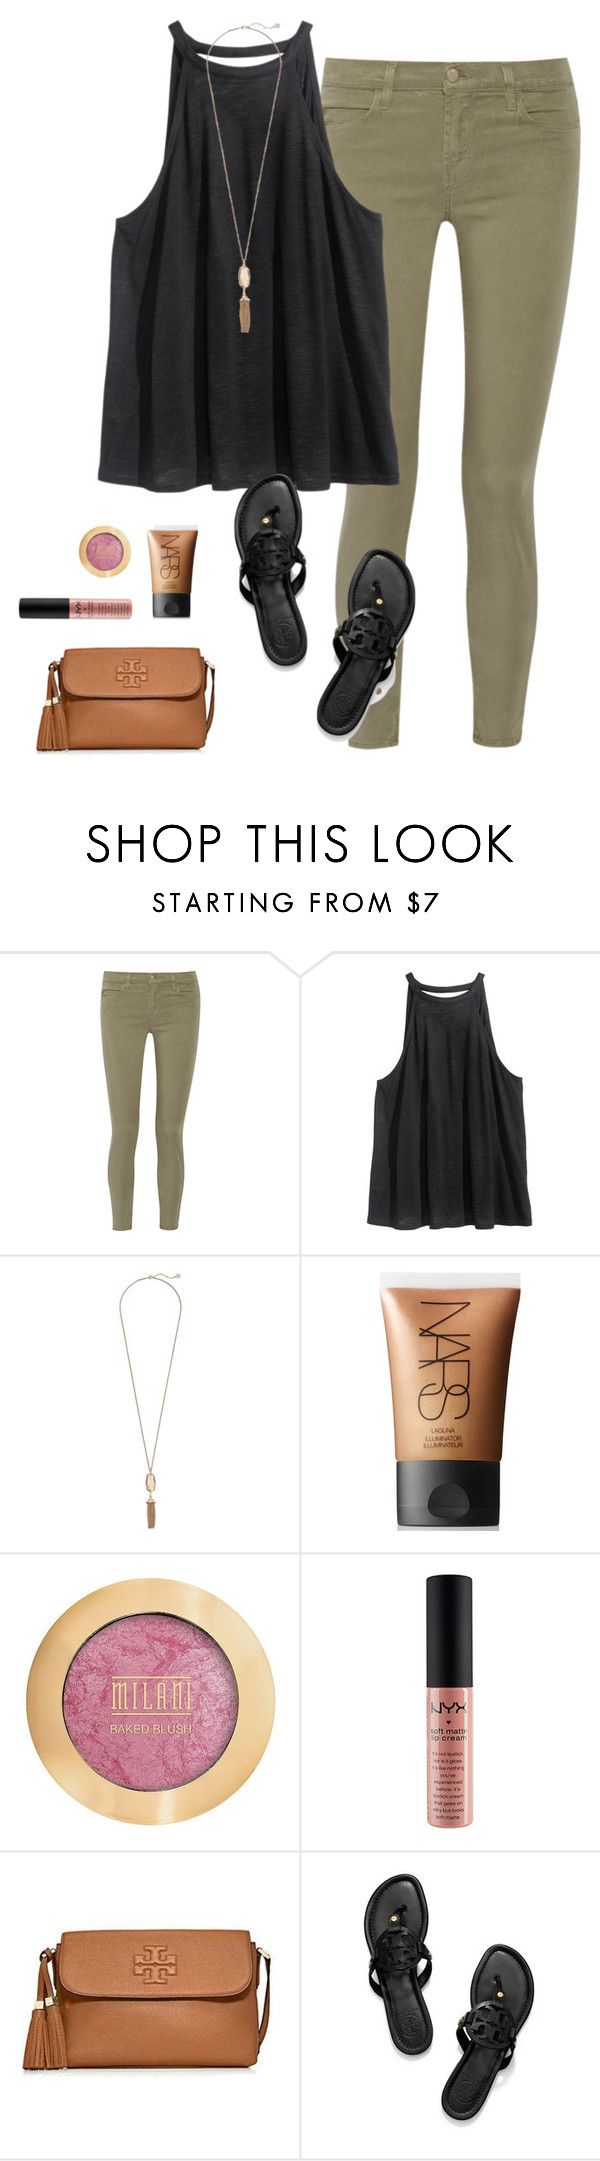 """OOTN"" by prep-lover1 ❤ liked on Polyvore featuring J Brand, H&M, Kendra Scott, NARS Cosmetics, Milani, NYX and Tory Burch"